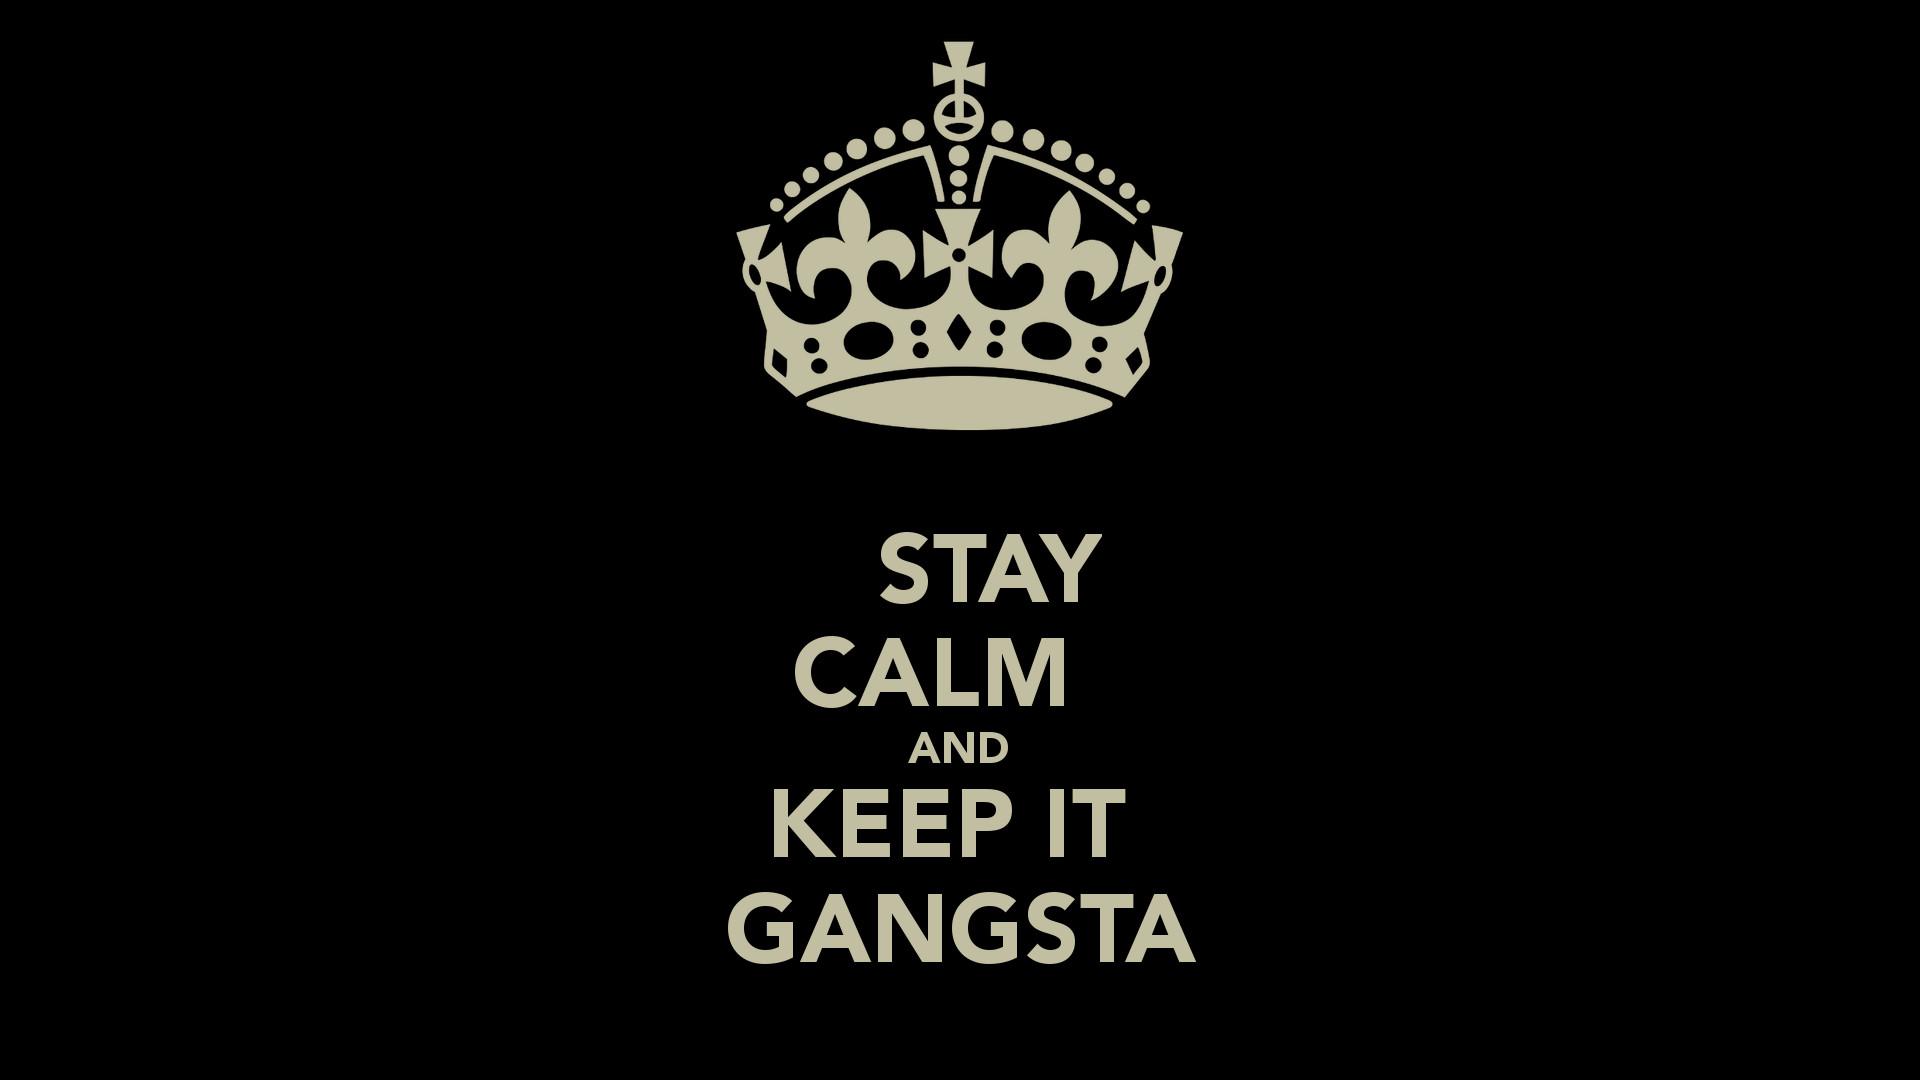 Gangster HD Wallpapers in Best Resolutions | Jeri Weinstock  NMgnCP PC Gallery